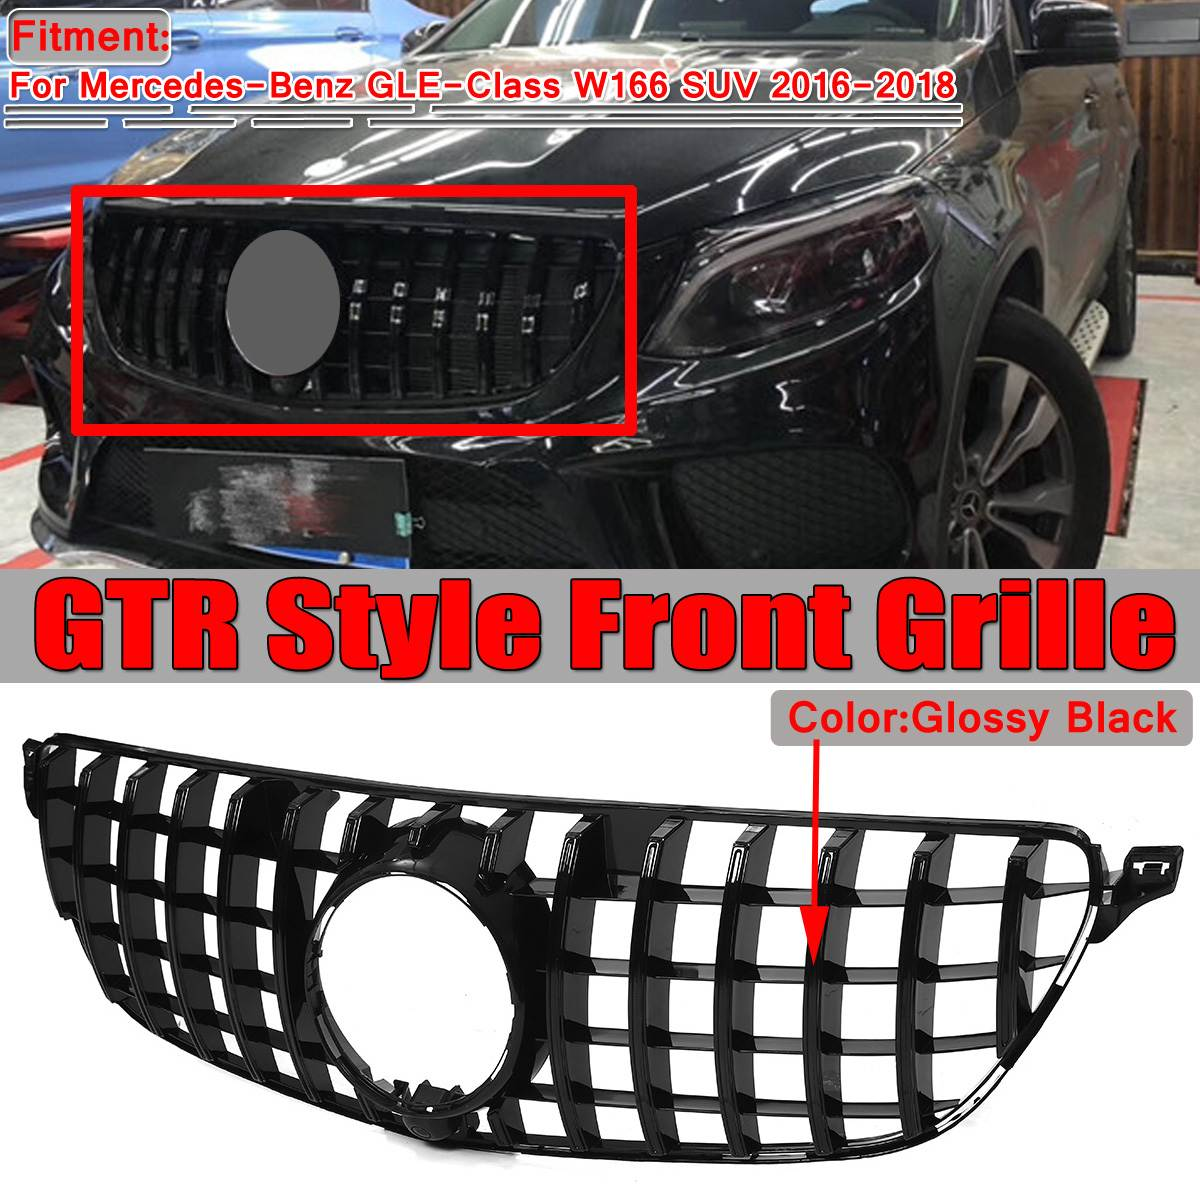 1x GTR GT R W166 Grill Car Front Grill Grille For Mercedes For Benz GLE-Class W166 SUV 2016 2017 2018 Black/Chrome Racing Grills image